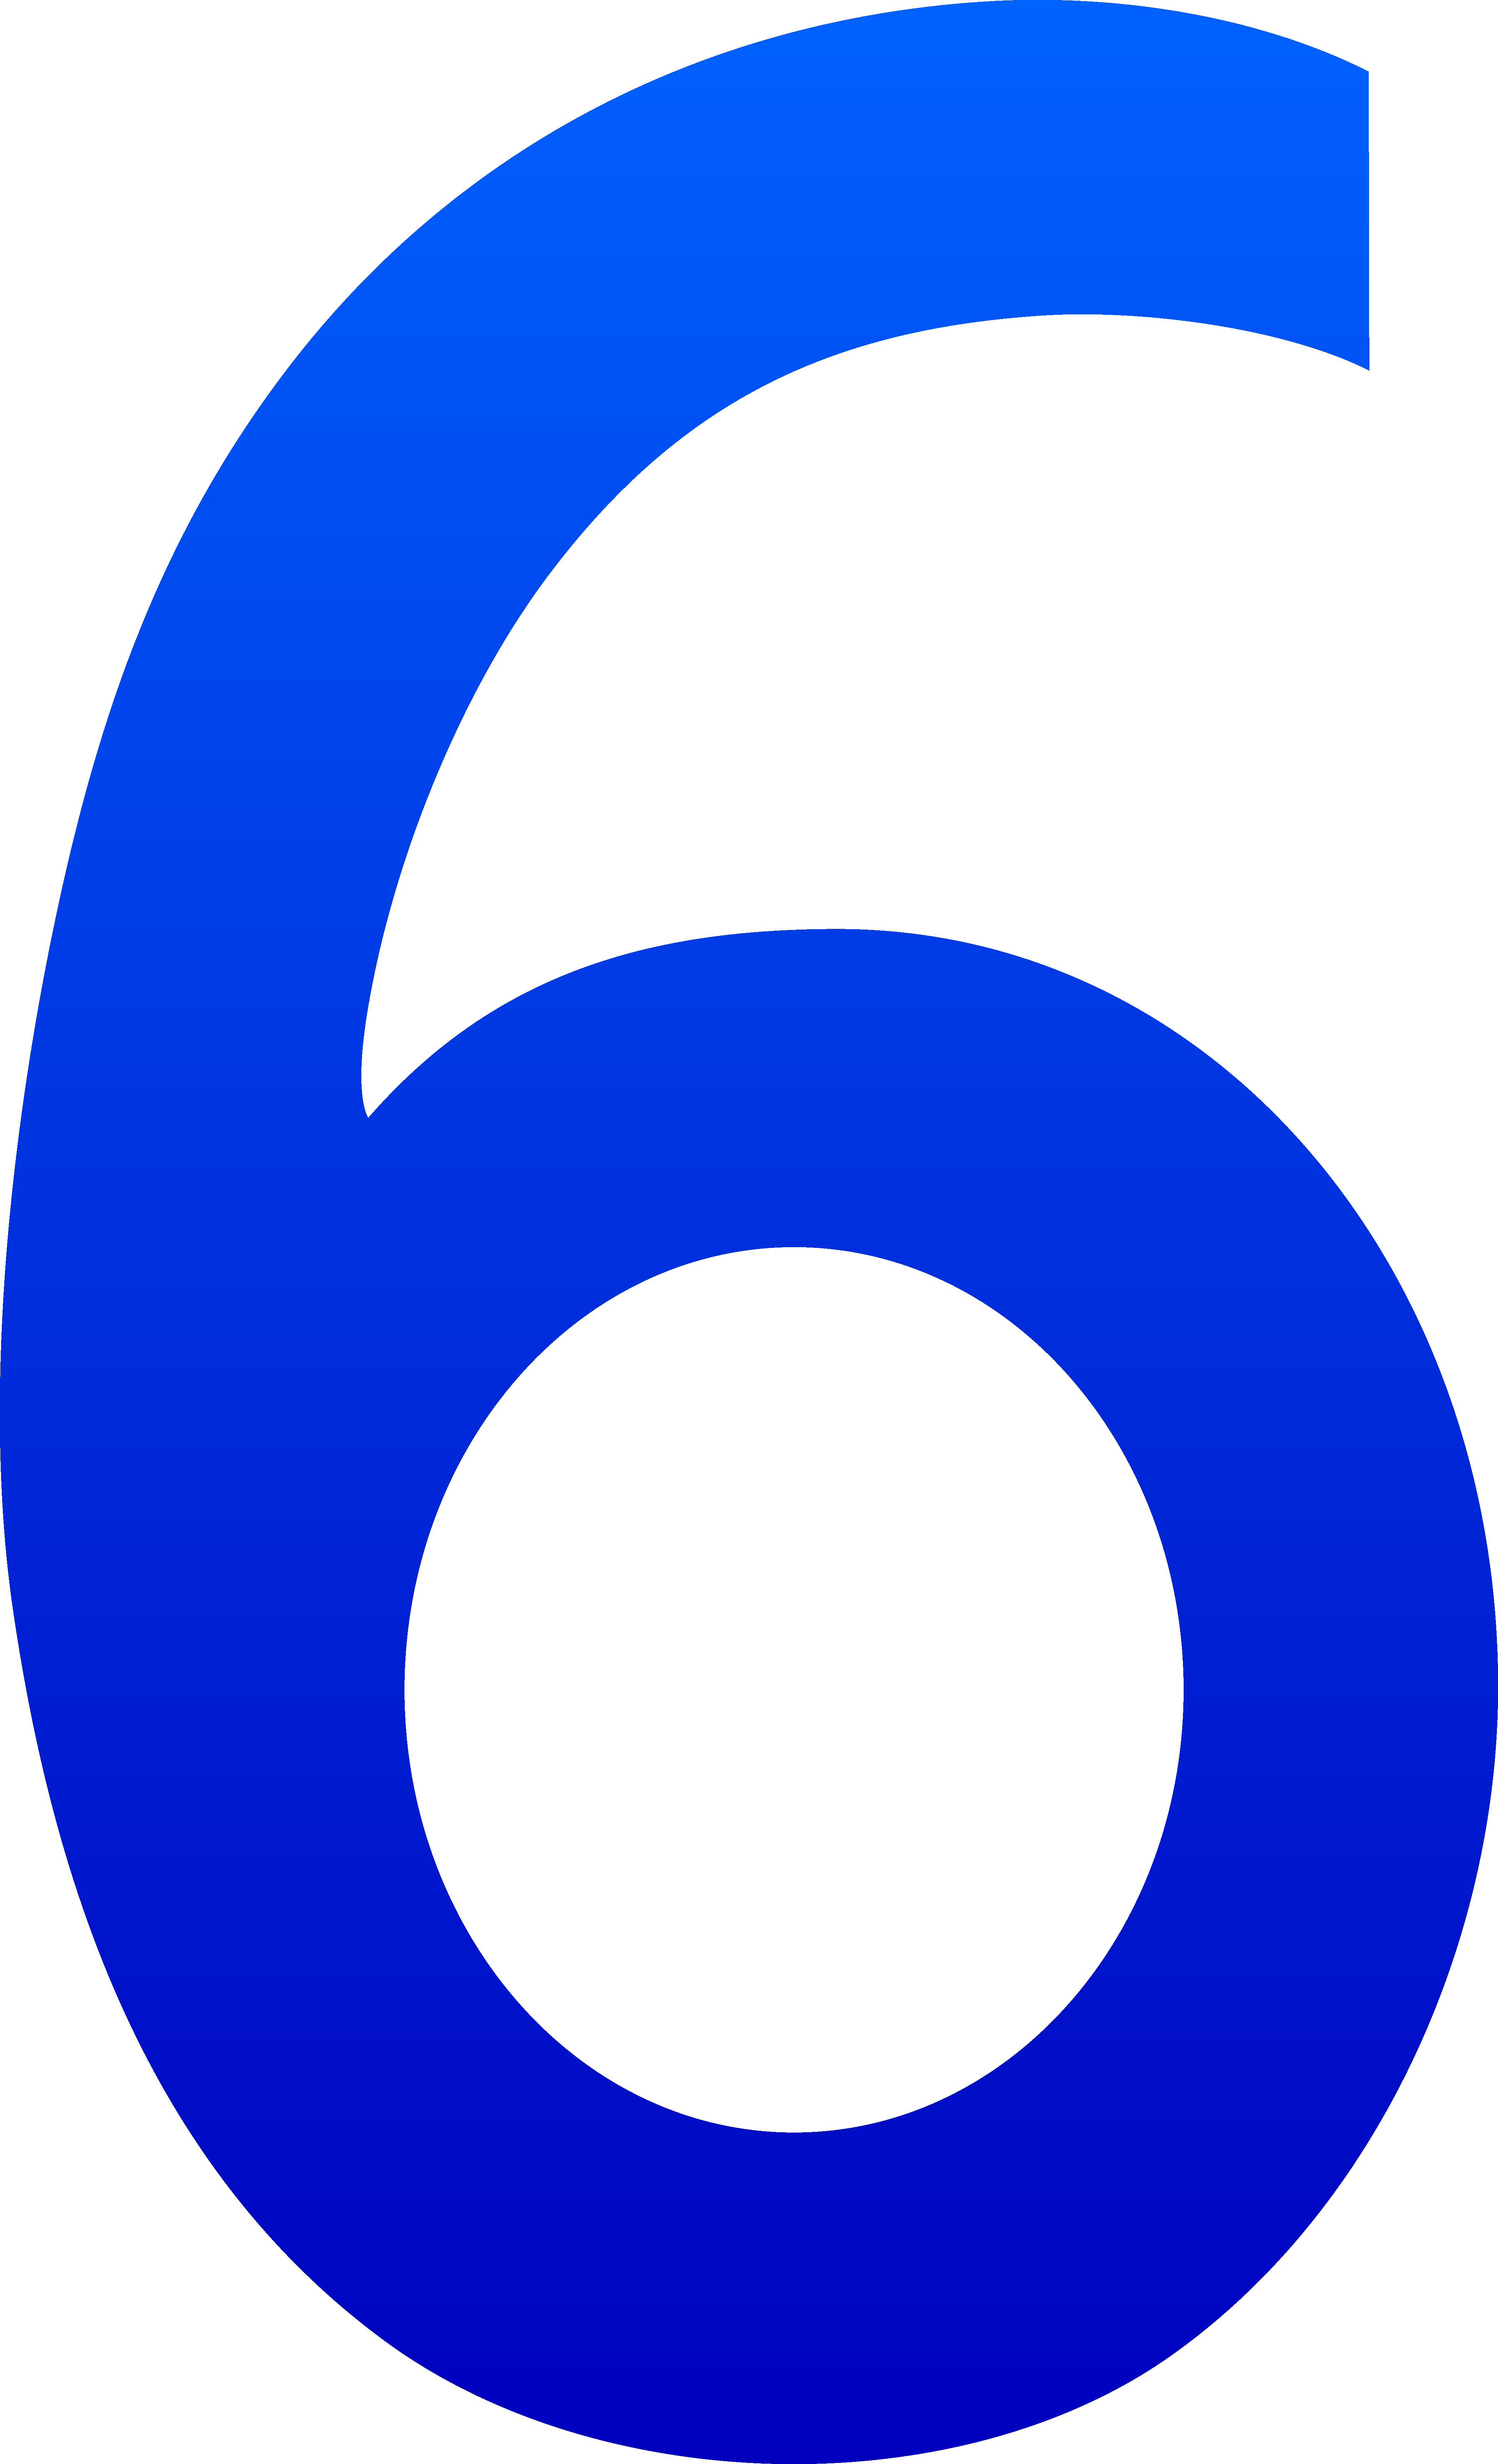 The Number Six - Free Clip Art